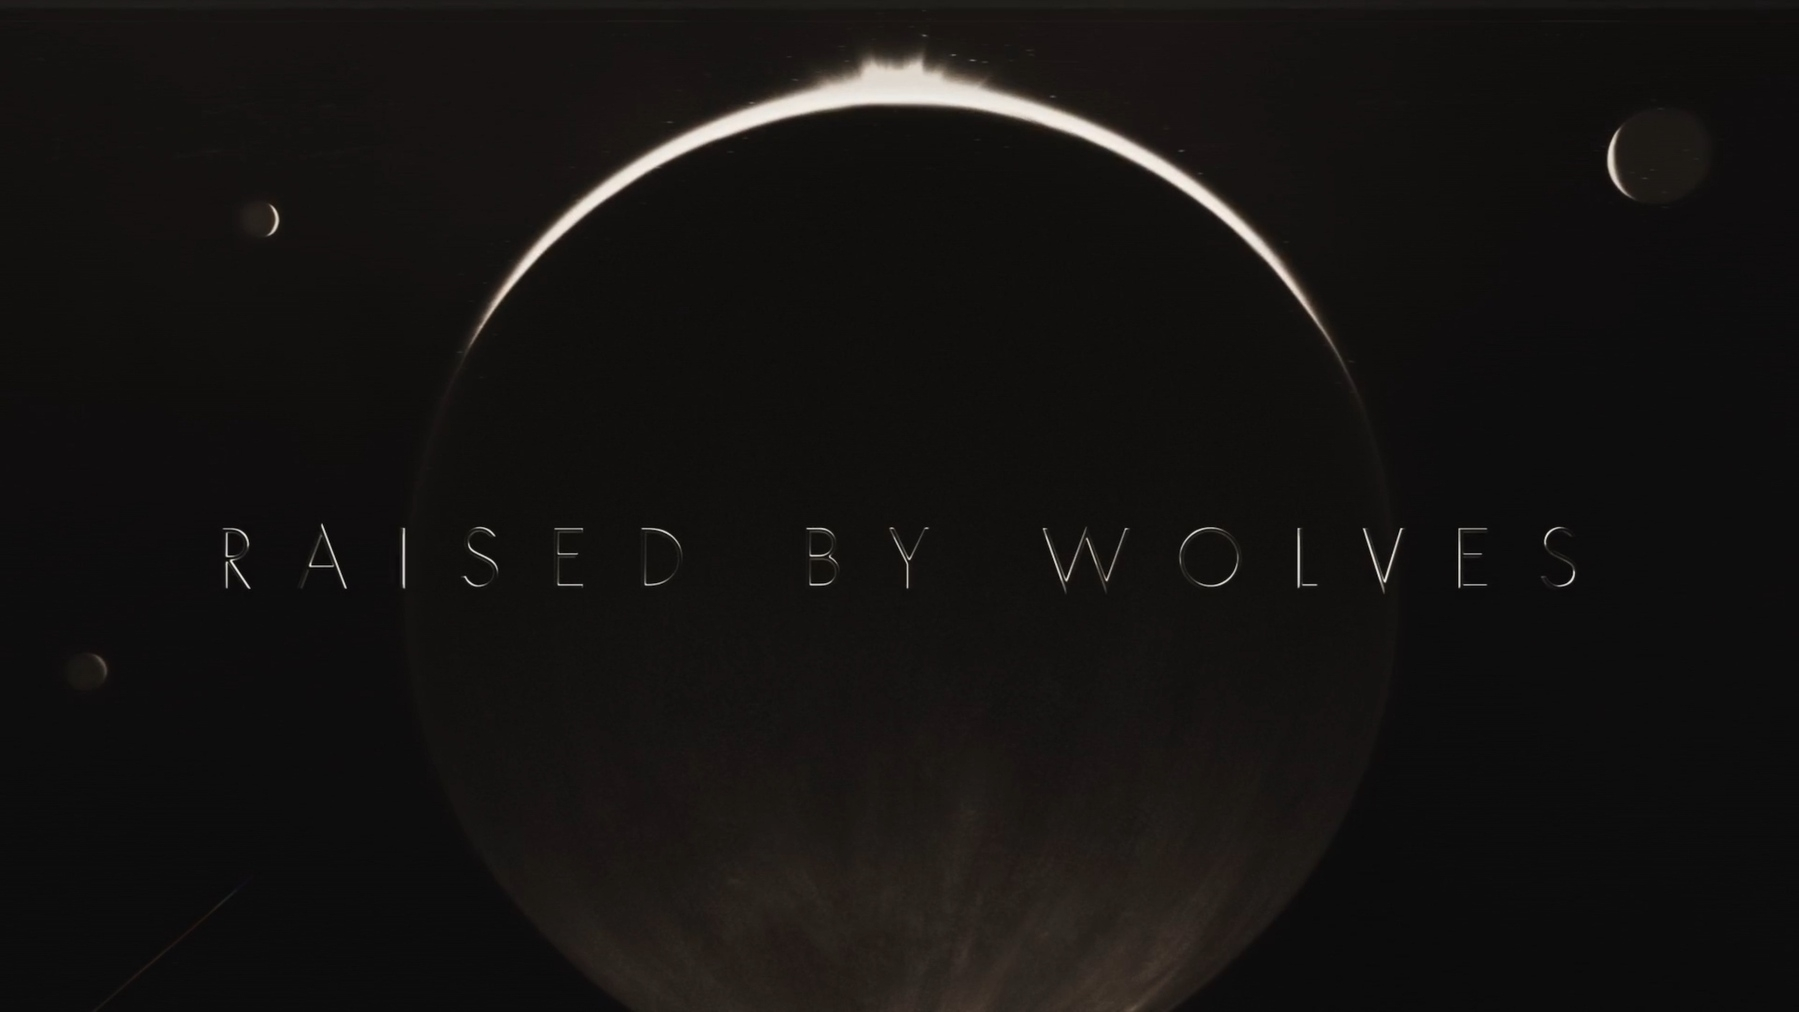 The title card for the tv show, Raised by Wolves.